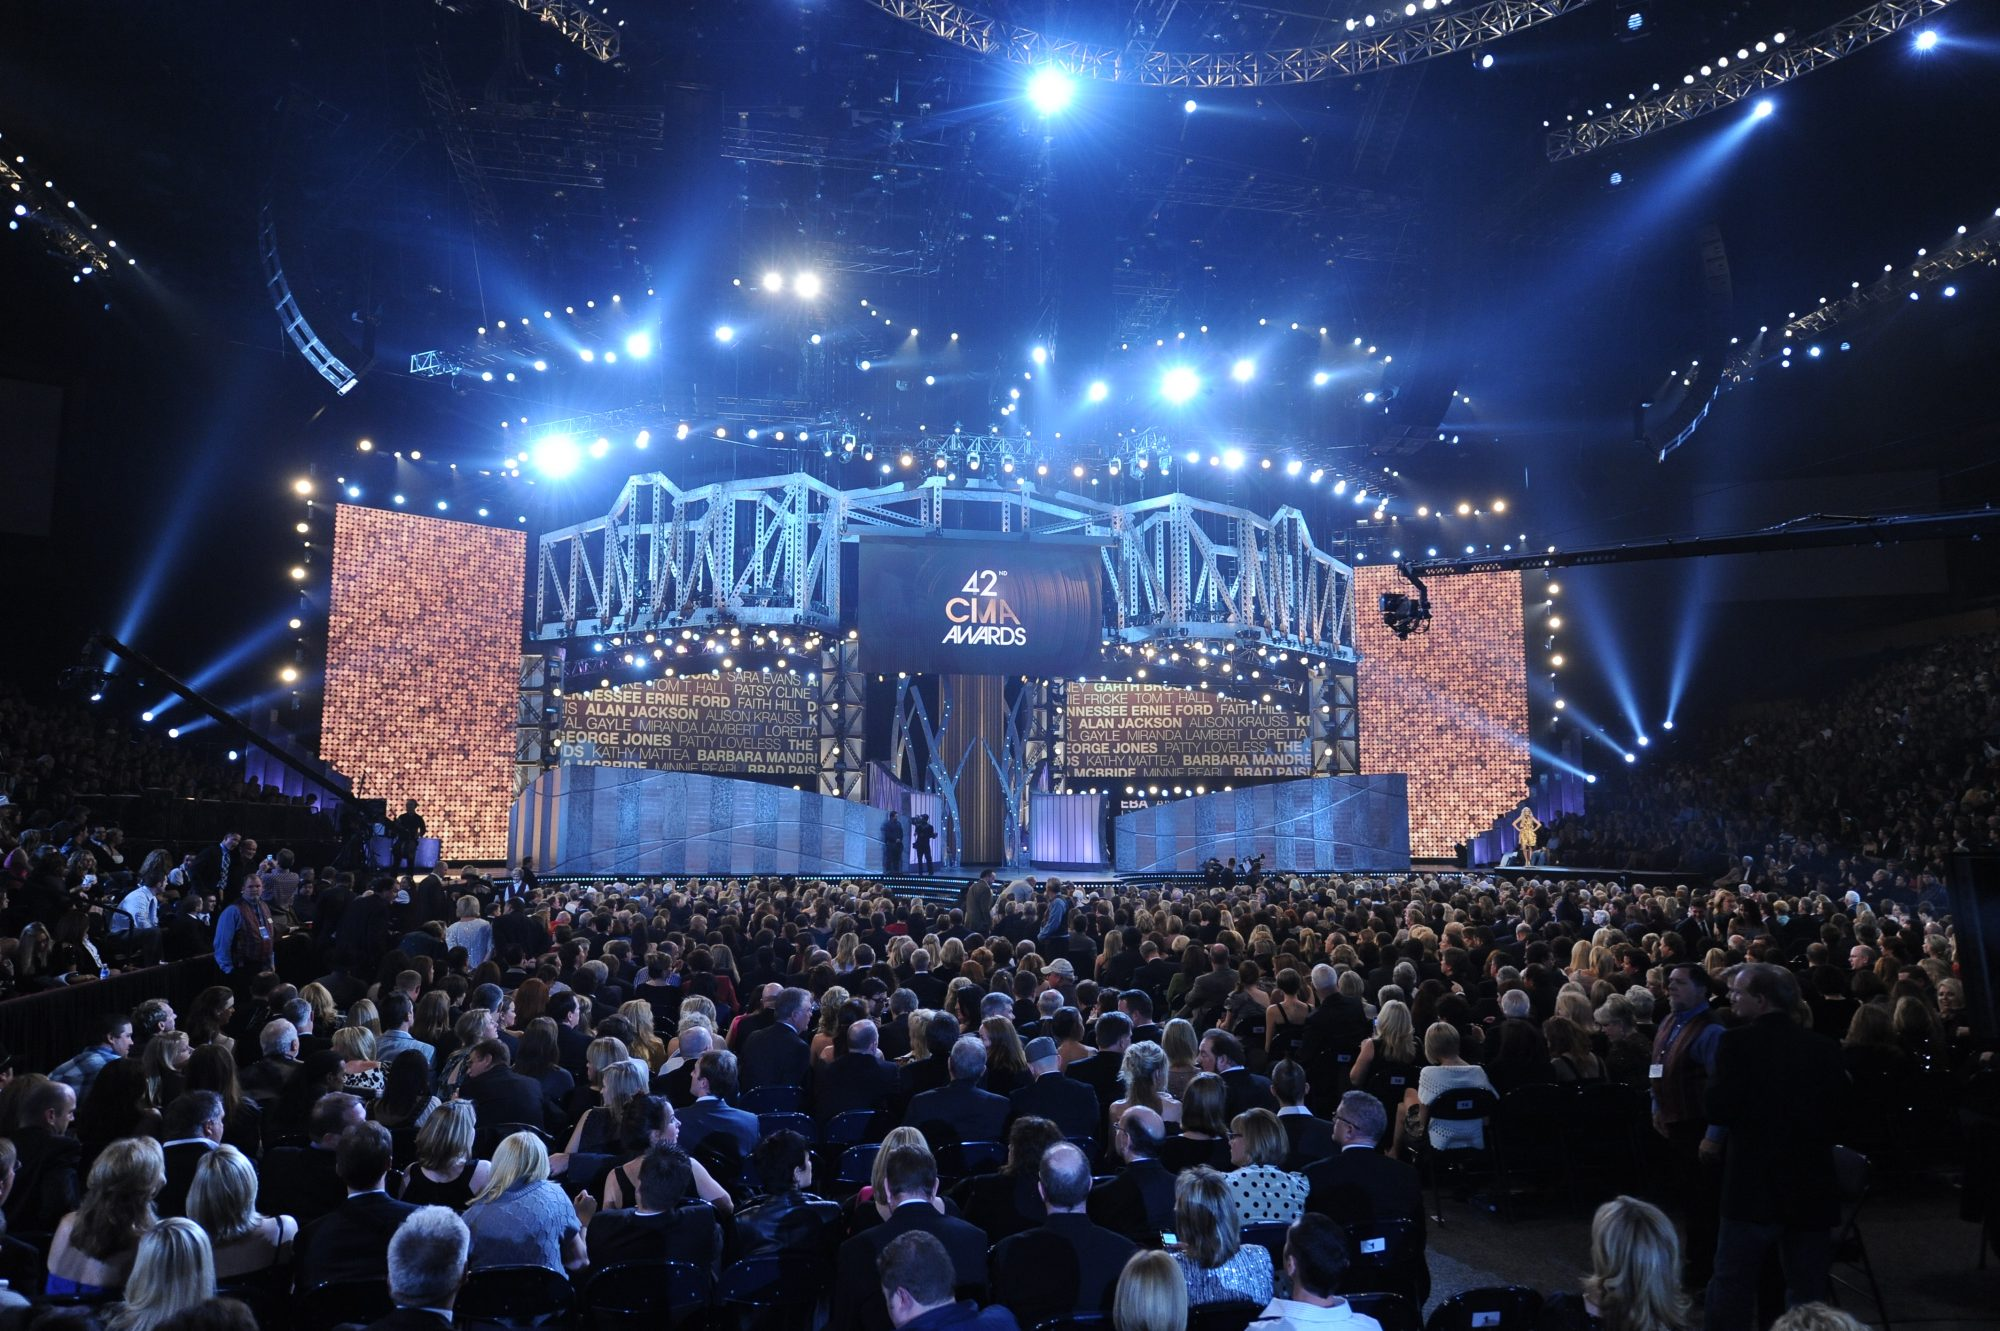 Cma Awards Tickets Amp Travel Packages Gem Hospitality